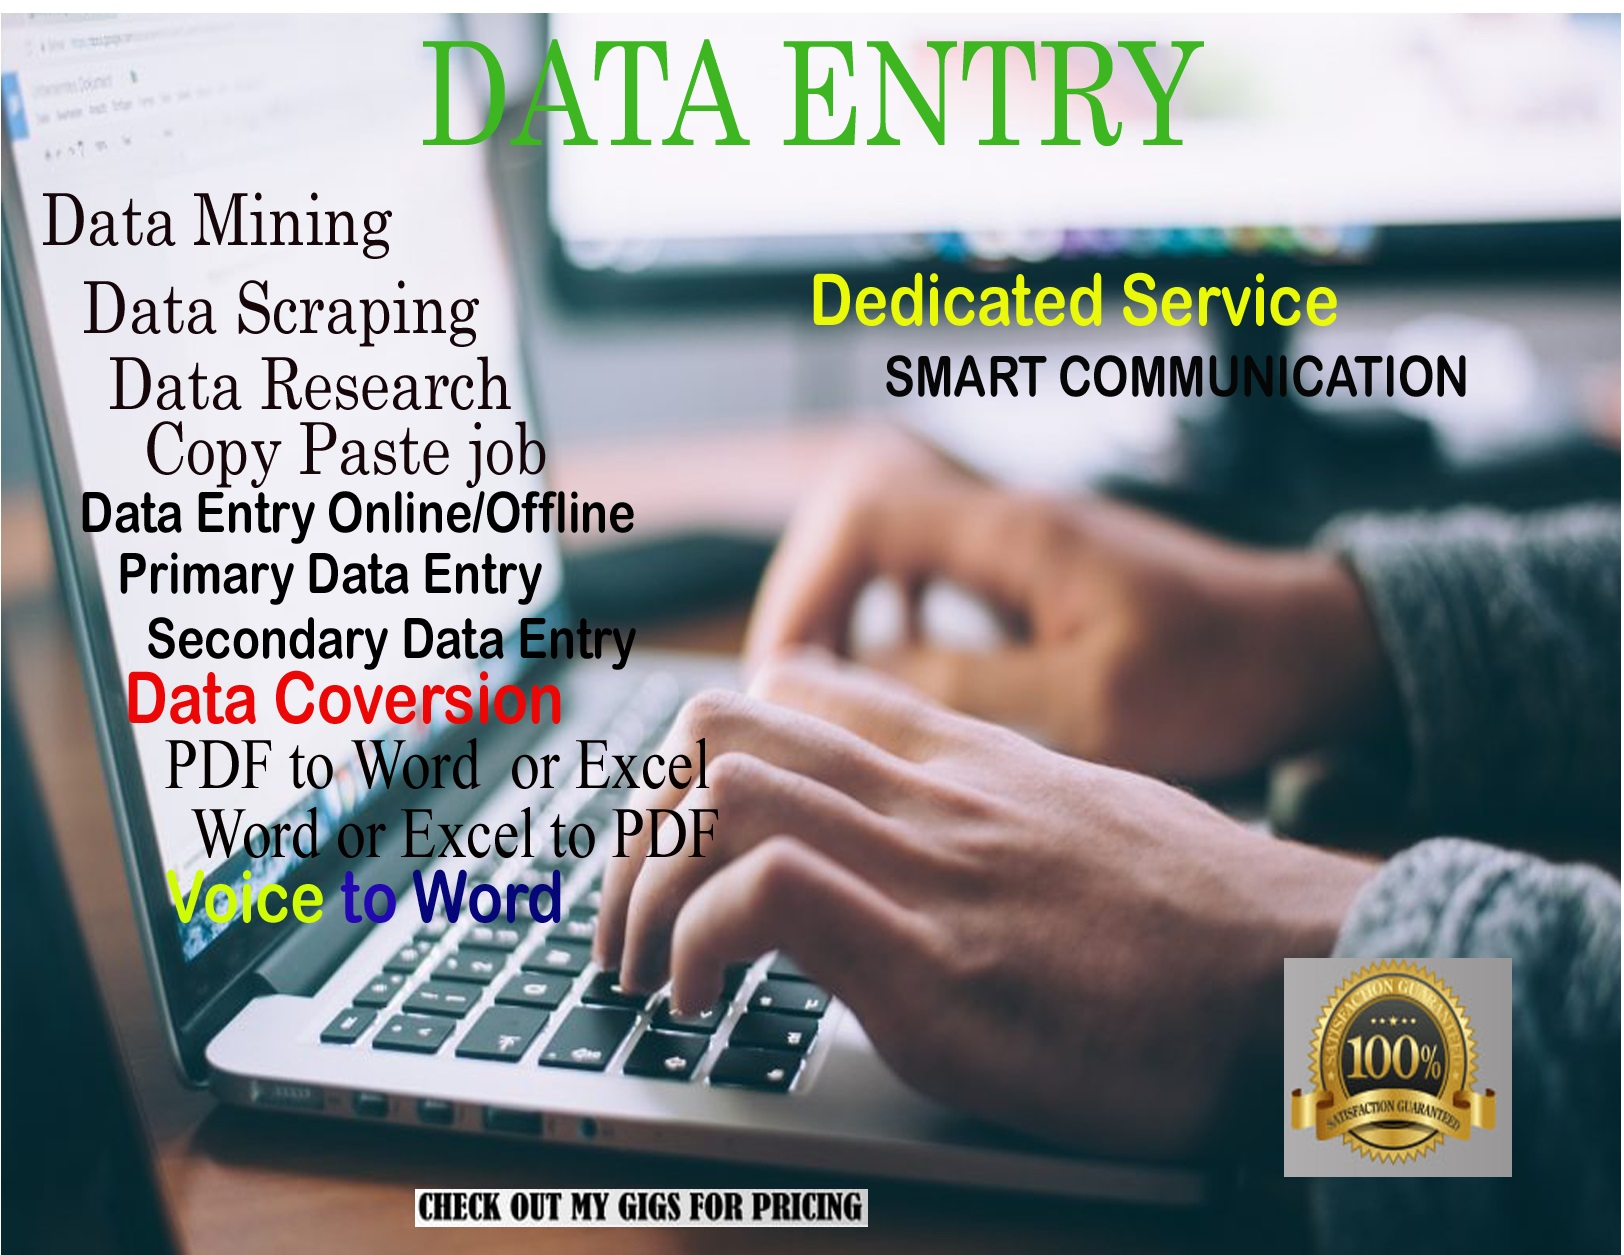 Data Entry Work With Dedicated Service